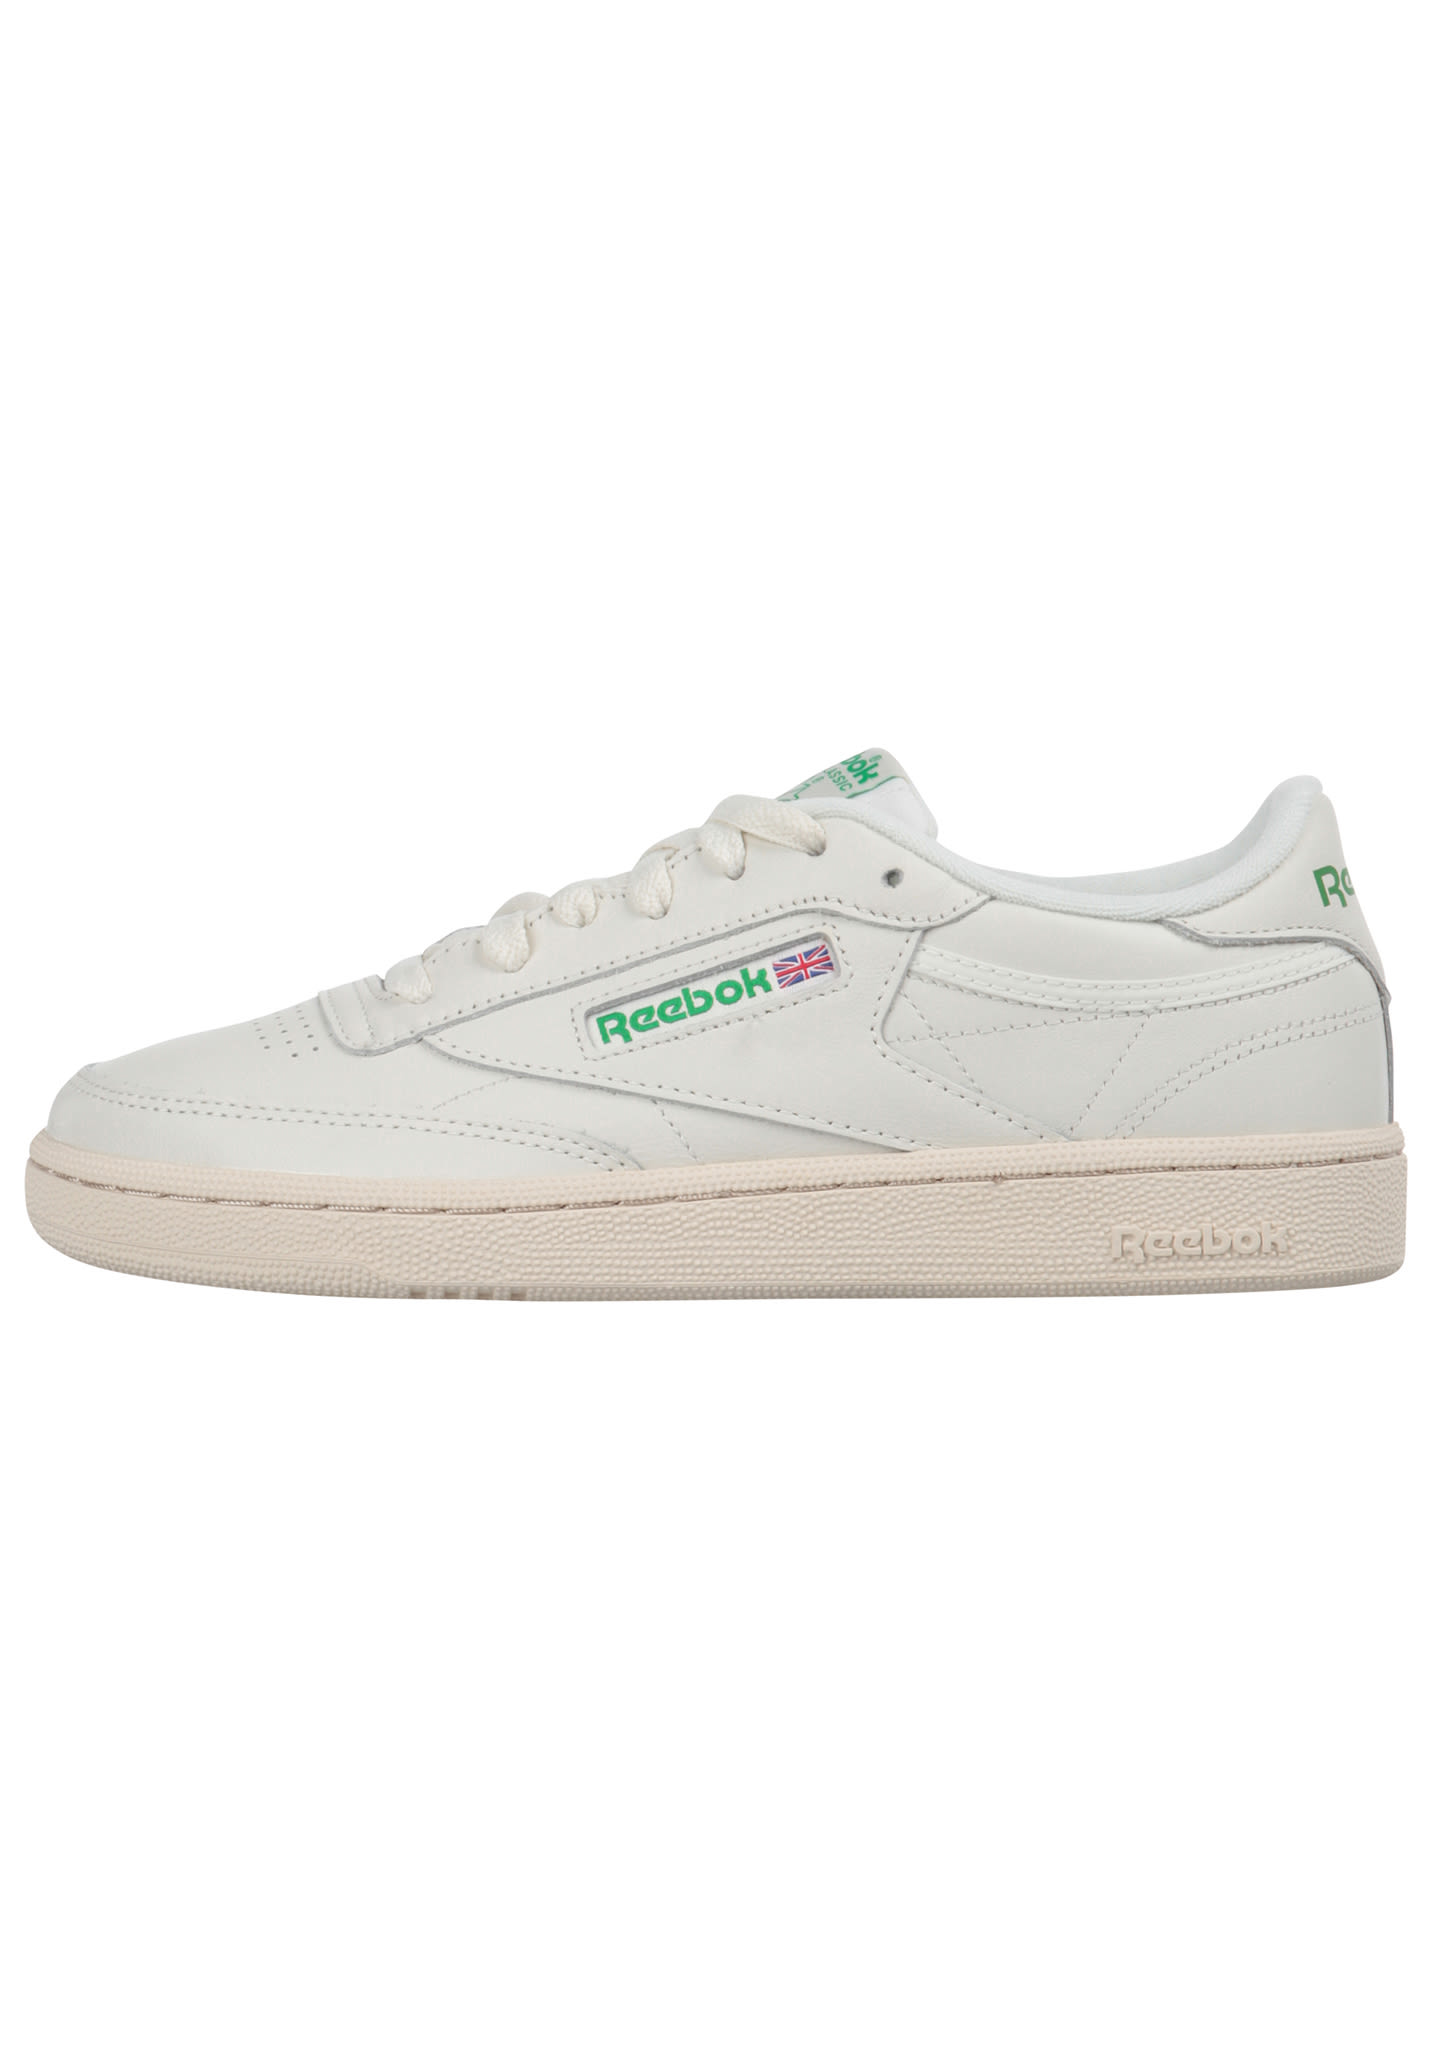 check out 1fc95 70227 Reebok Club C 85 - Sneakers for Women - Beige